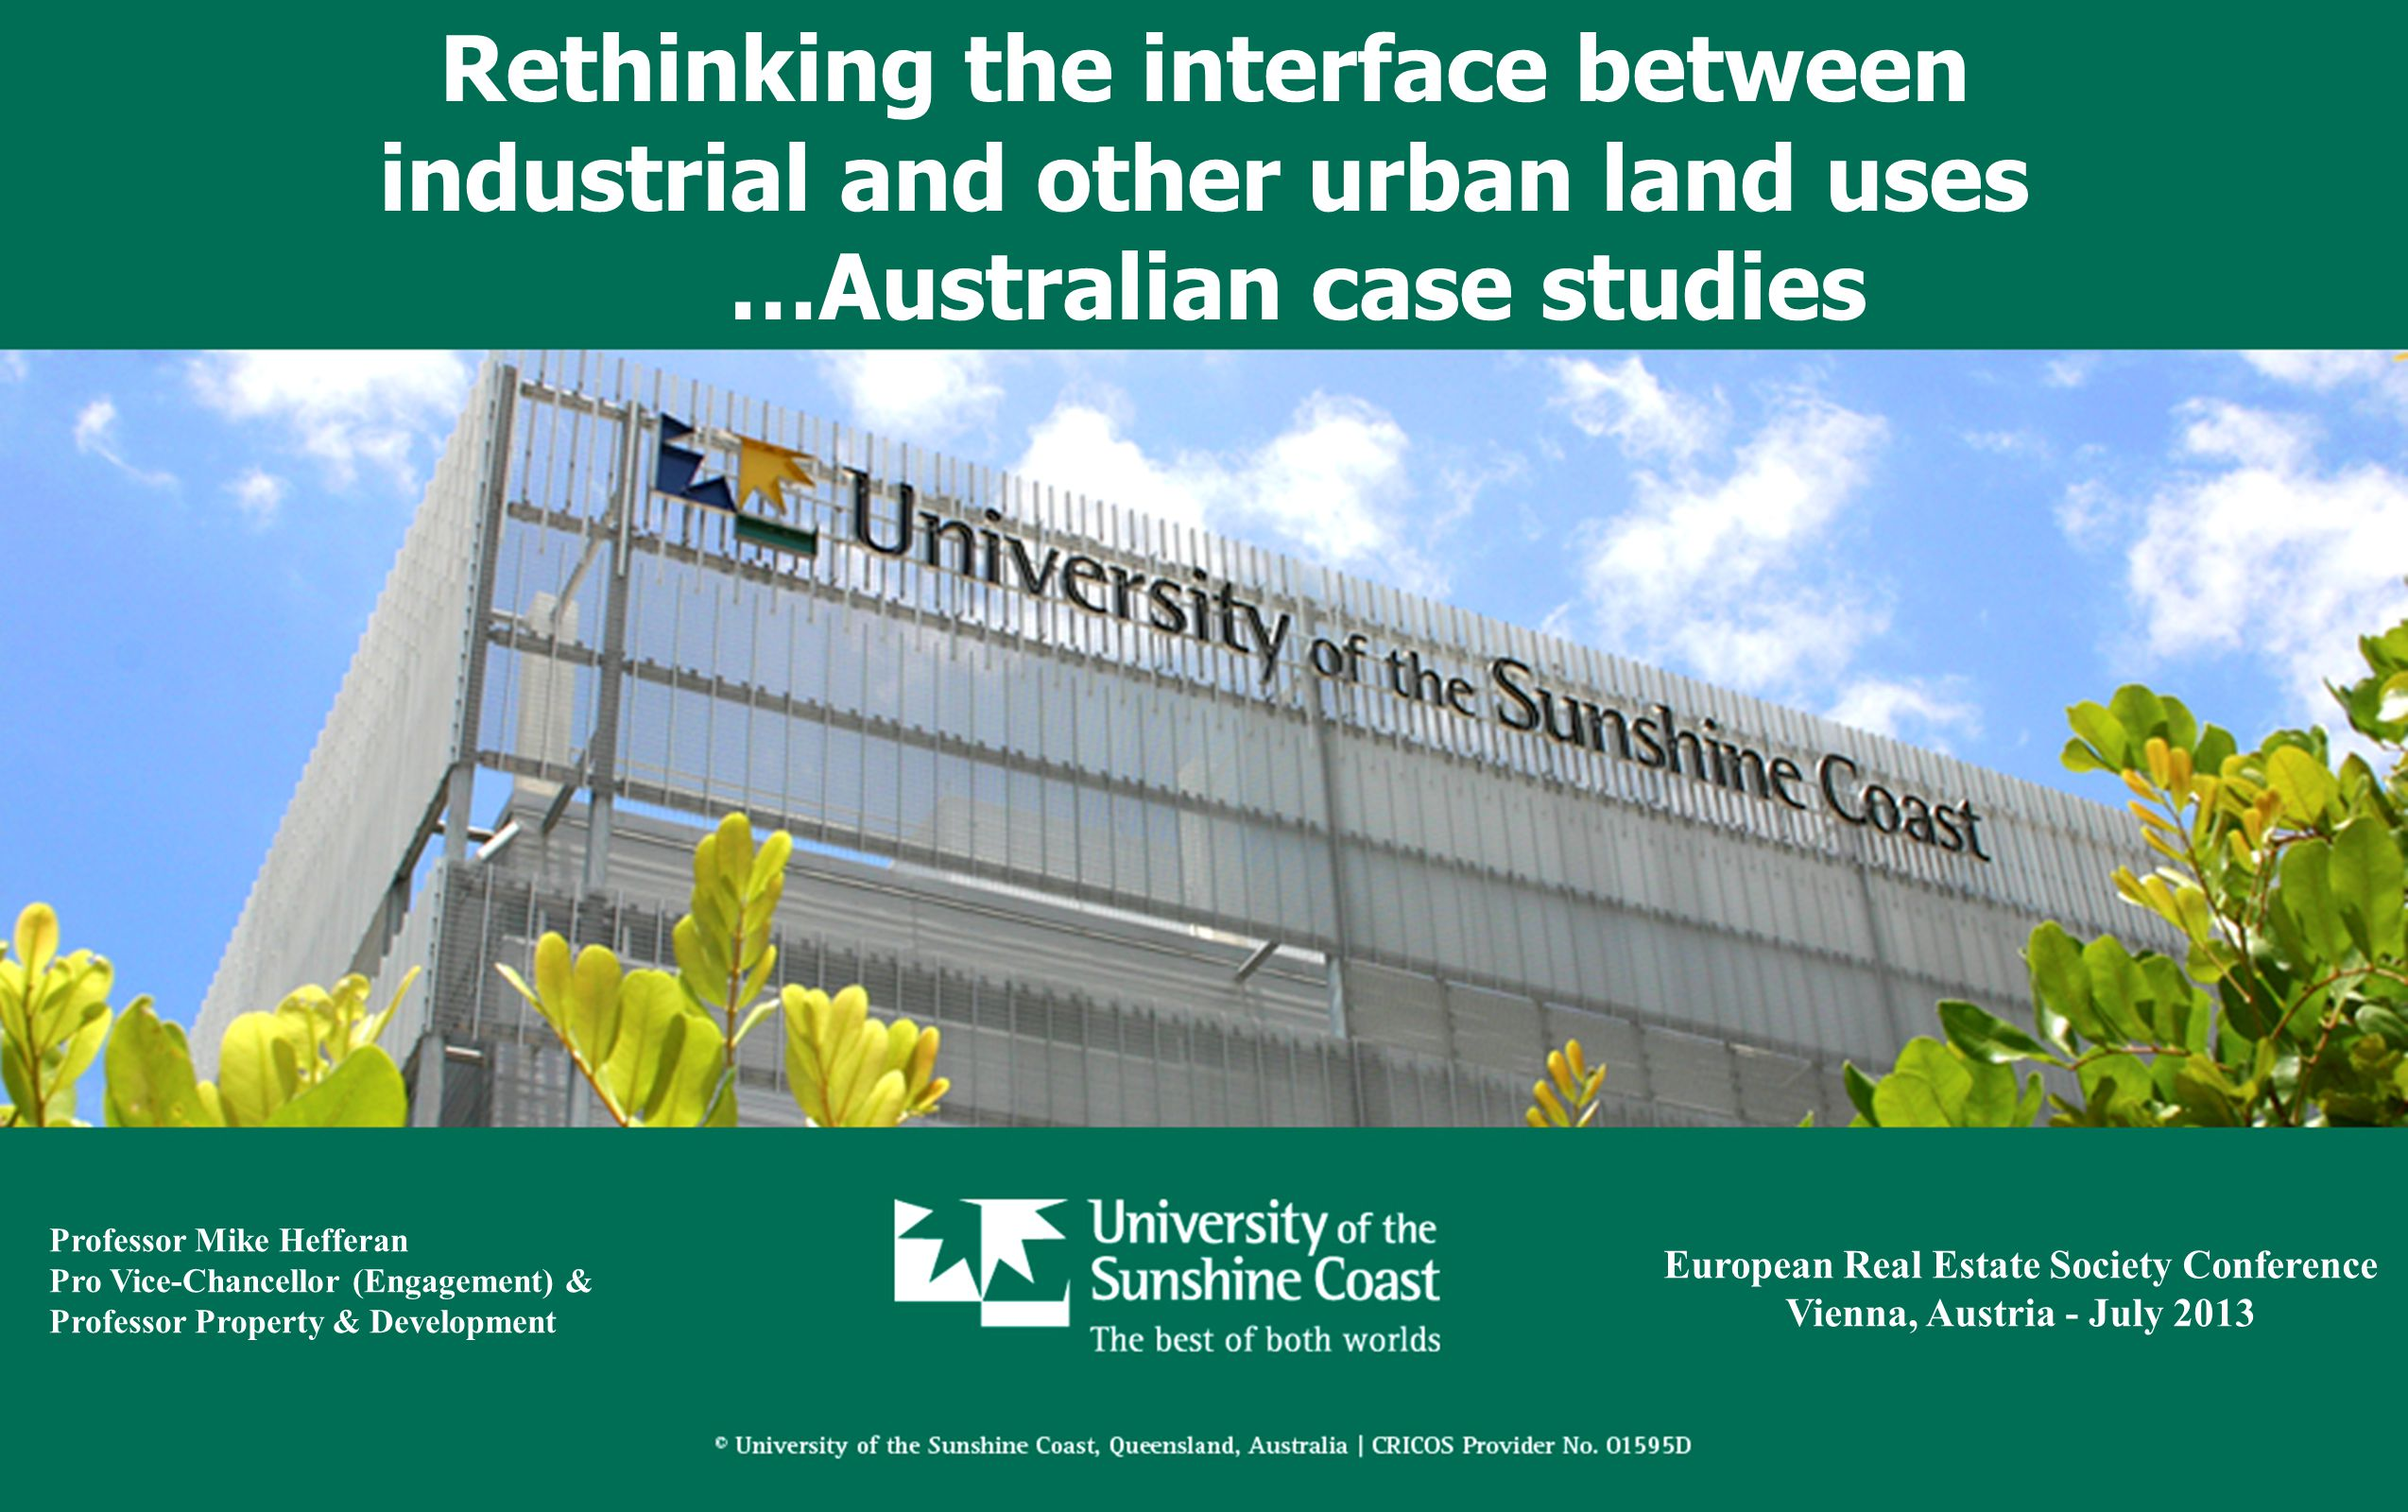 Rethinking the interface between industrial and other urban land uses …Australian case studies European Real Estate Society Conference Vienna, Austria - July 2013 Professor Mike Hefferan Pro Vice-Chancellor (Engagement) & Professor Property & Development